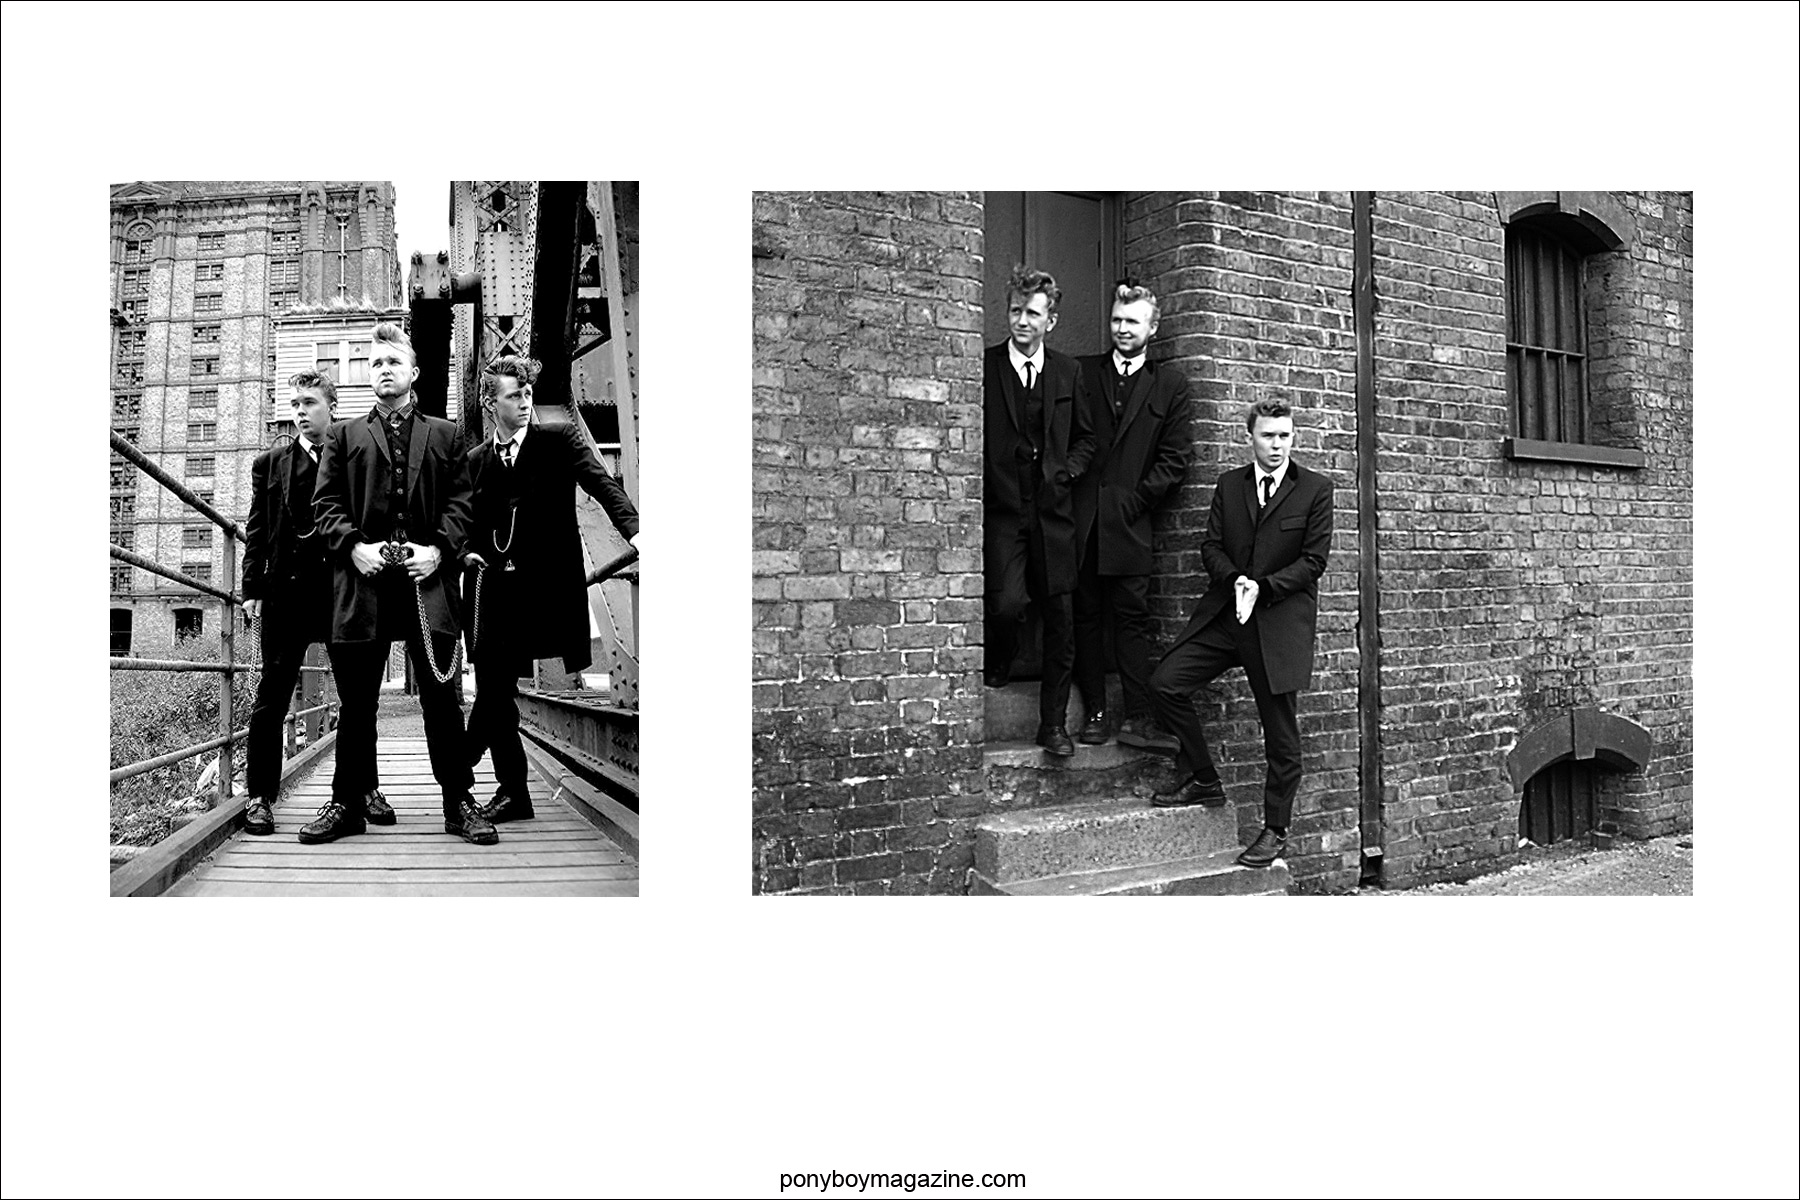 Old publicity shots for UK band teddy boy band Furious. Ponyboy Magazine.